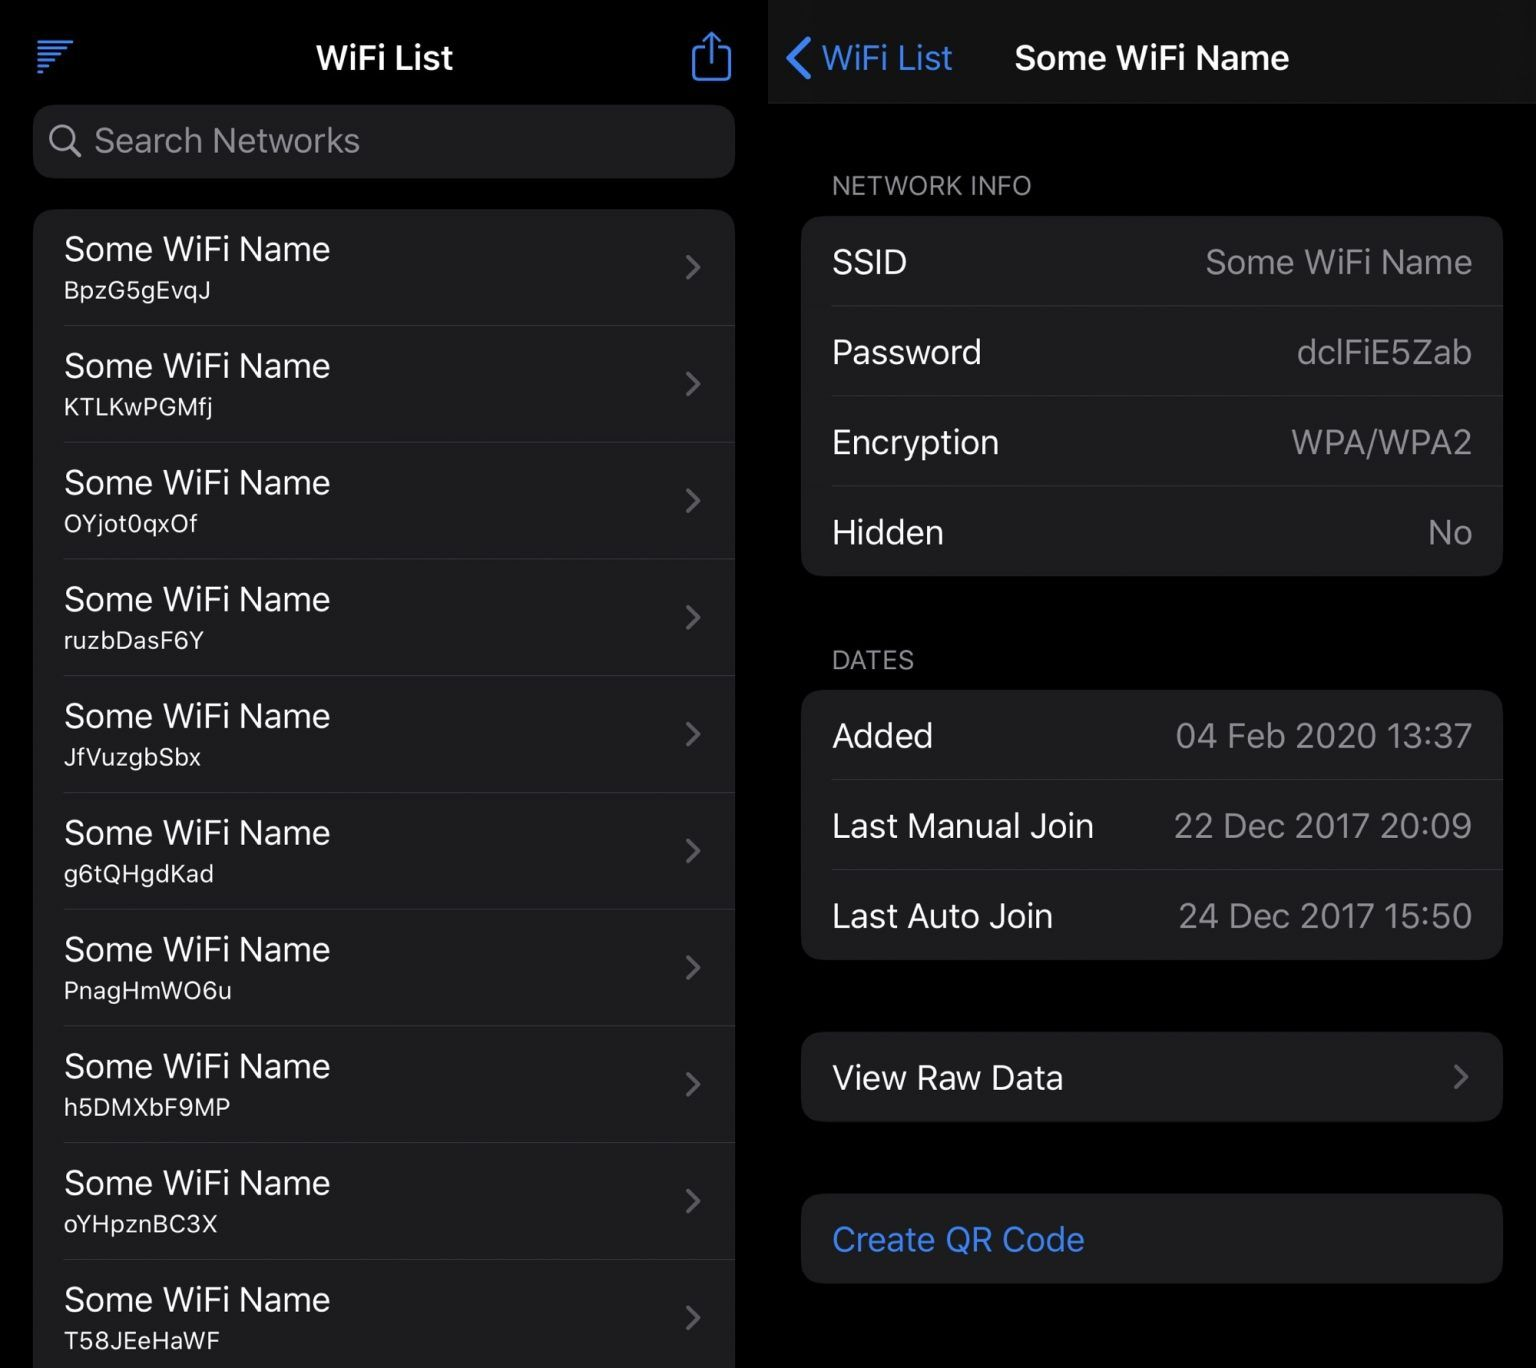 WiFi List Lets iPhone Users View Previous Wi-Fi Networks & Their Passwords